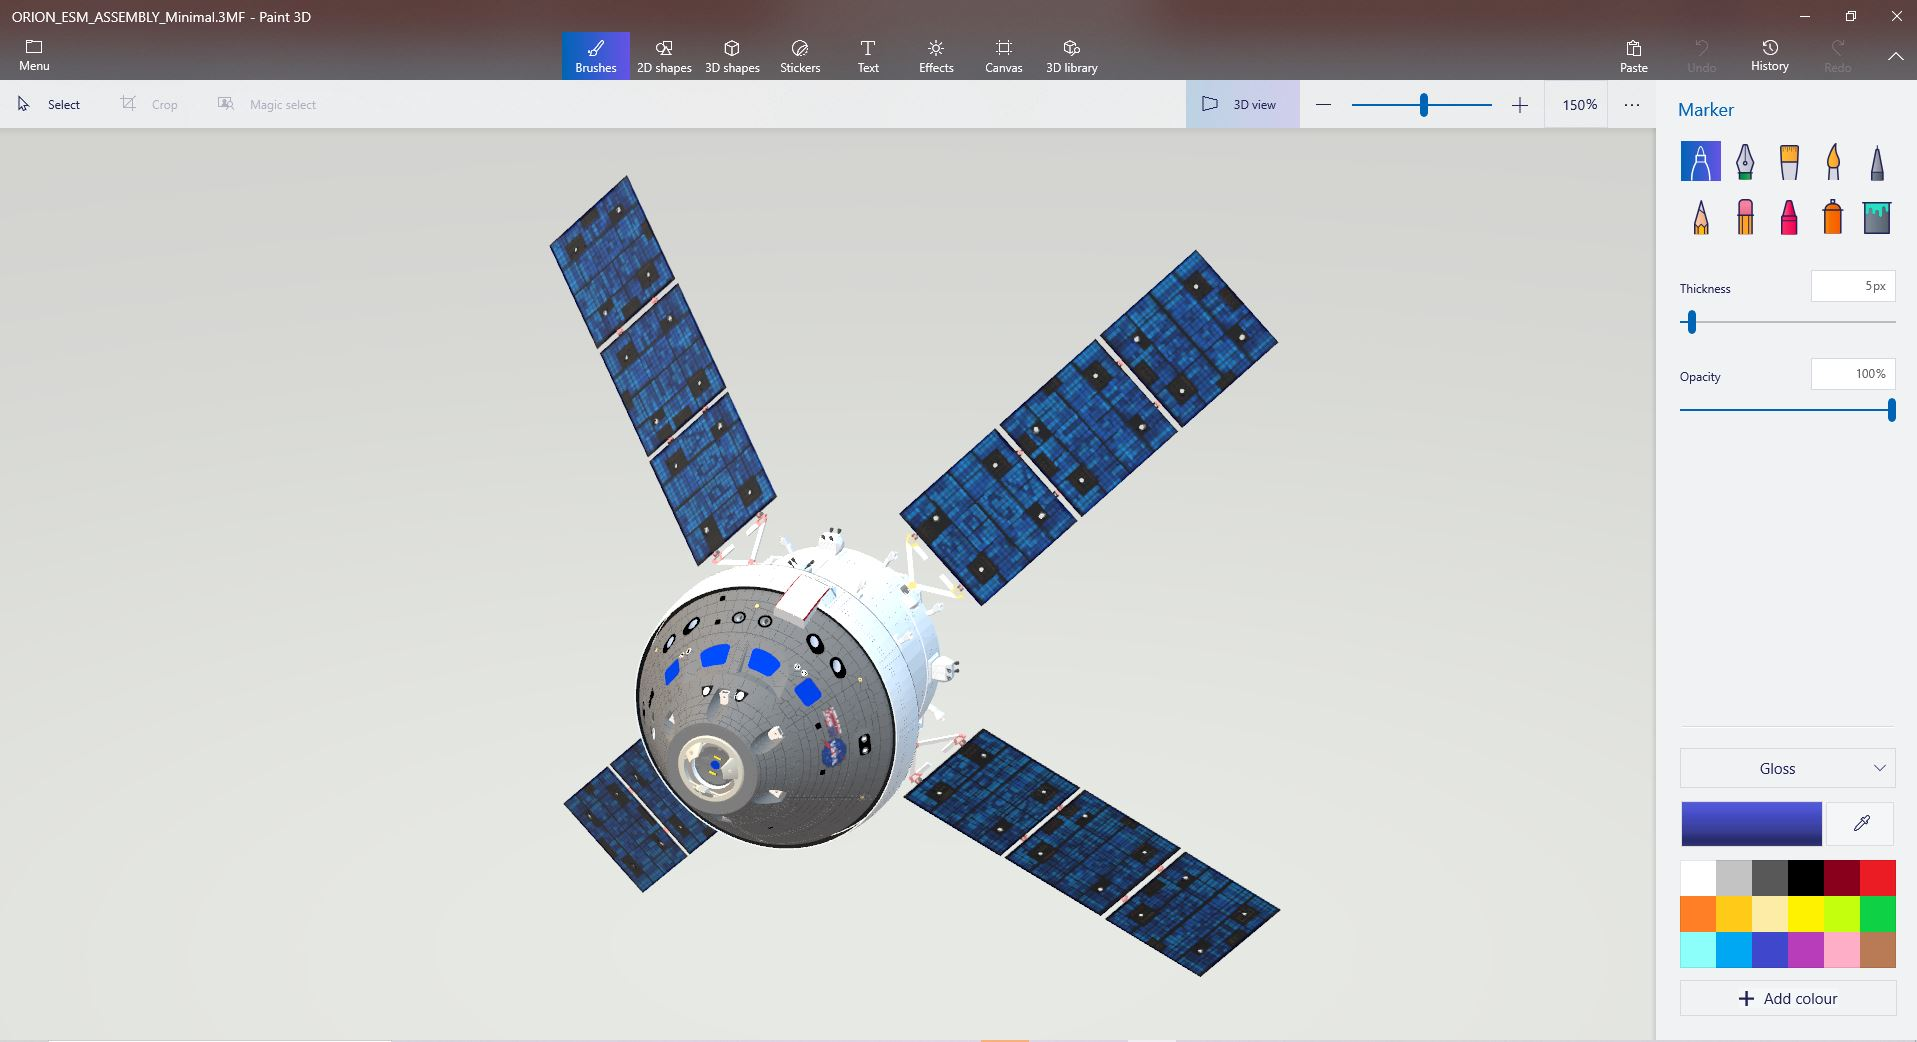 I have created a detailed 3D model of the Orion Spacecraft and imported it into Paint 3D... e8c51594-e687-458d-aaeb-d33c6fd080d6?upload=true.jpg